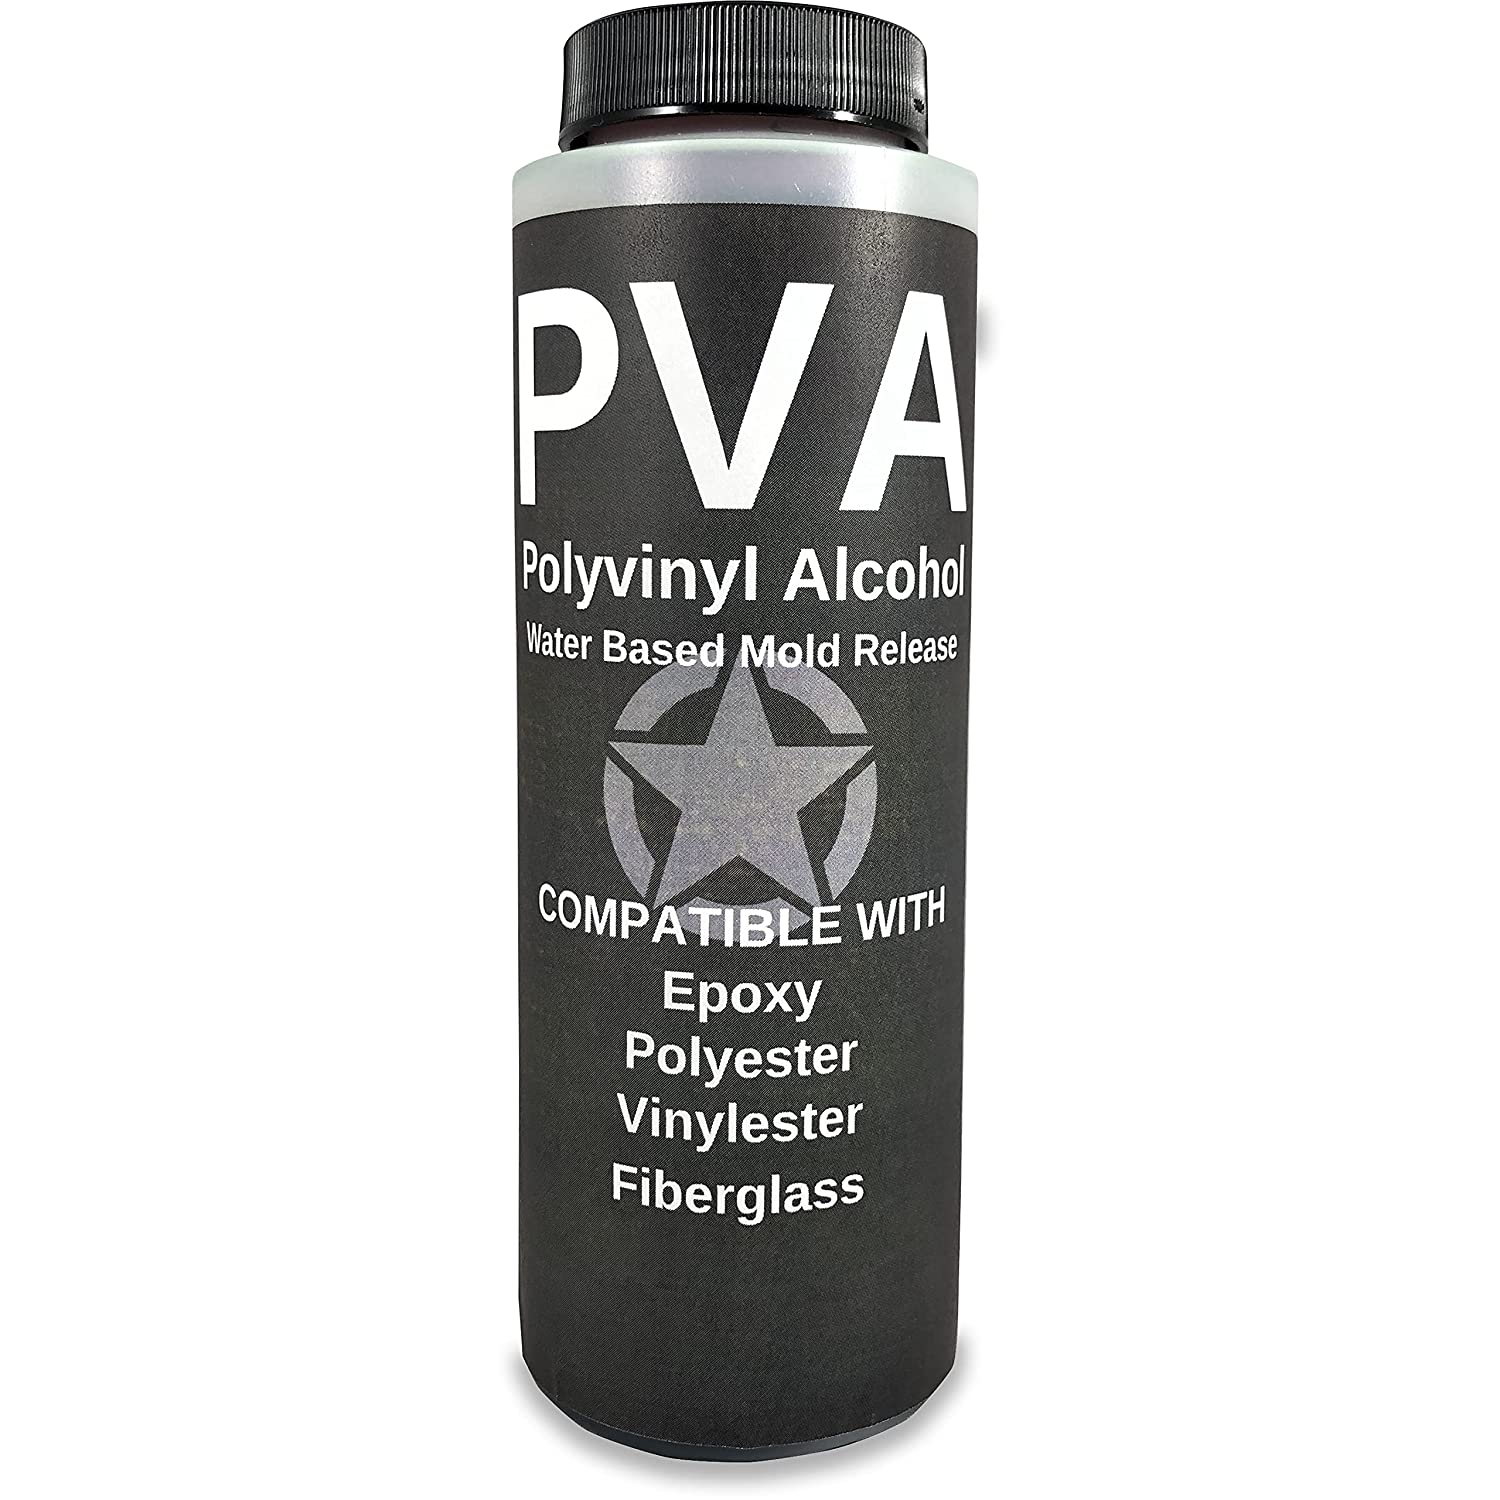 PVA Water Based Choice Mold-Release agent - Alcohol for Agent Polyvinyl service